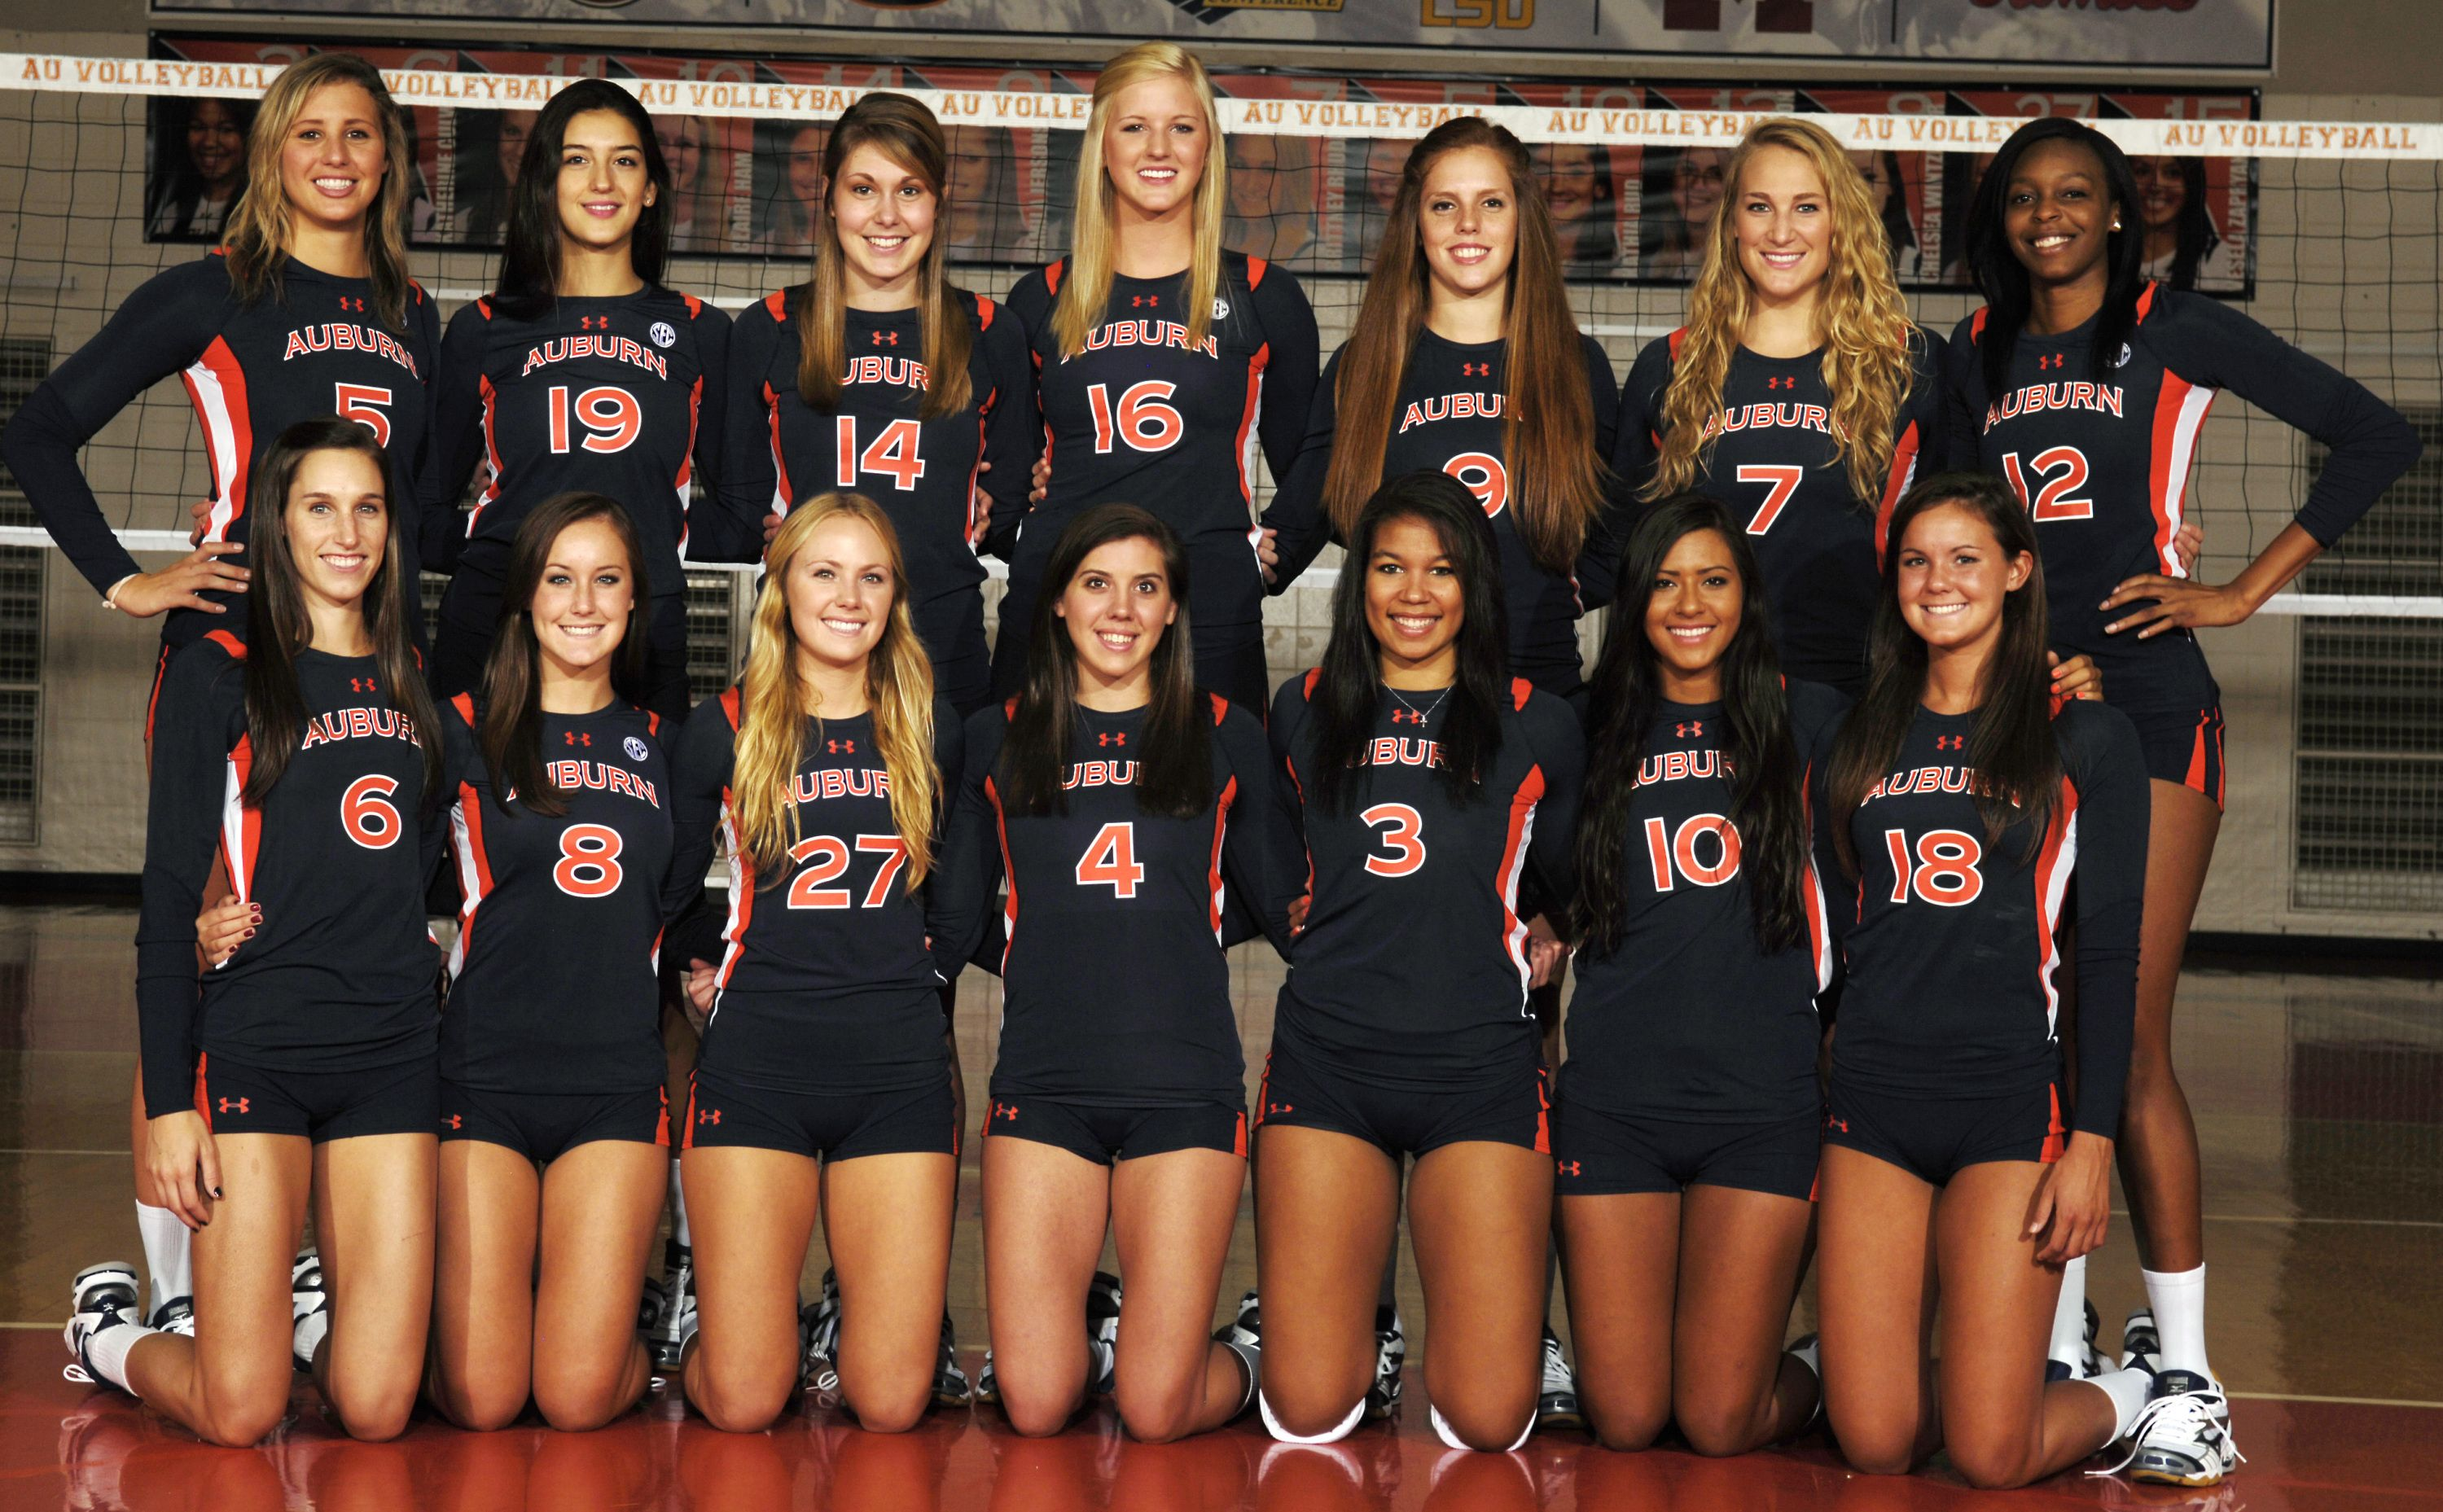 Women S Volleyball Team Women Volleyball Volleyball Team Pictures Volleyball Team